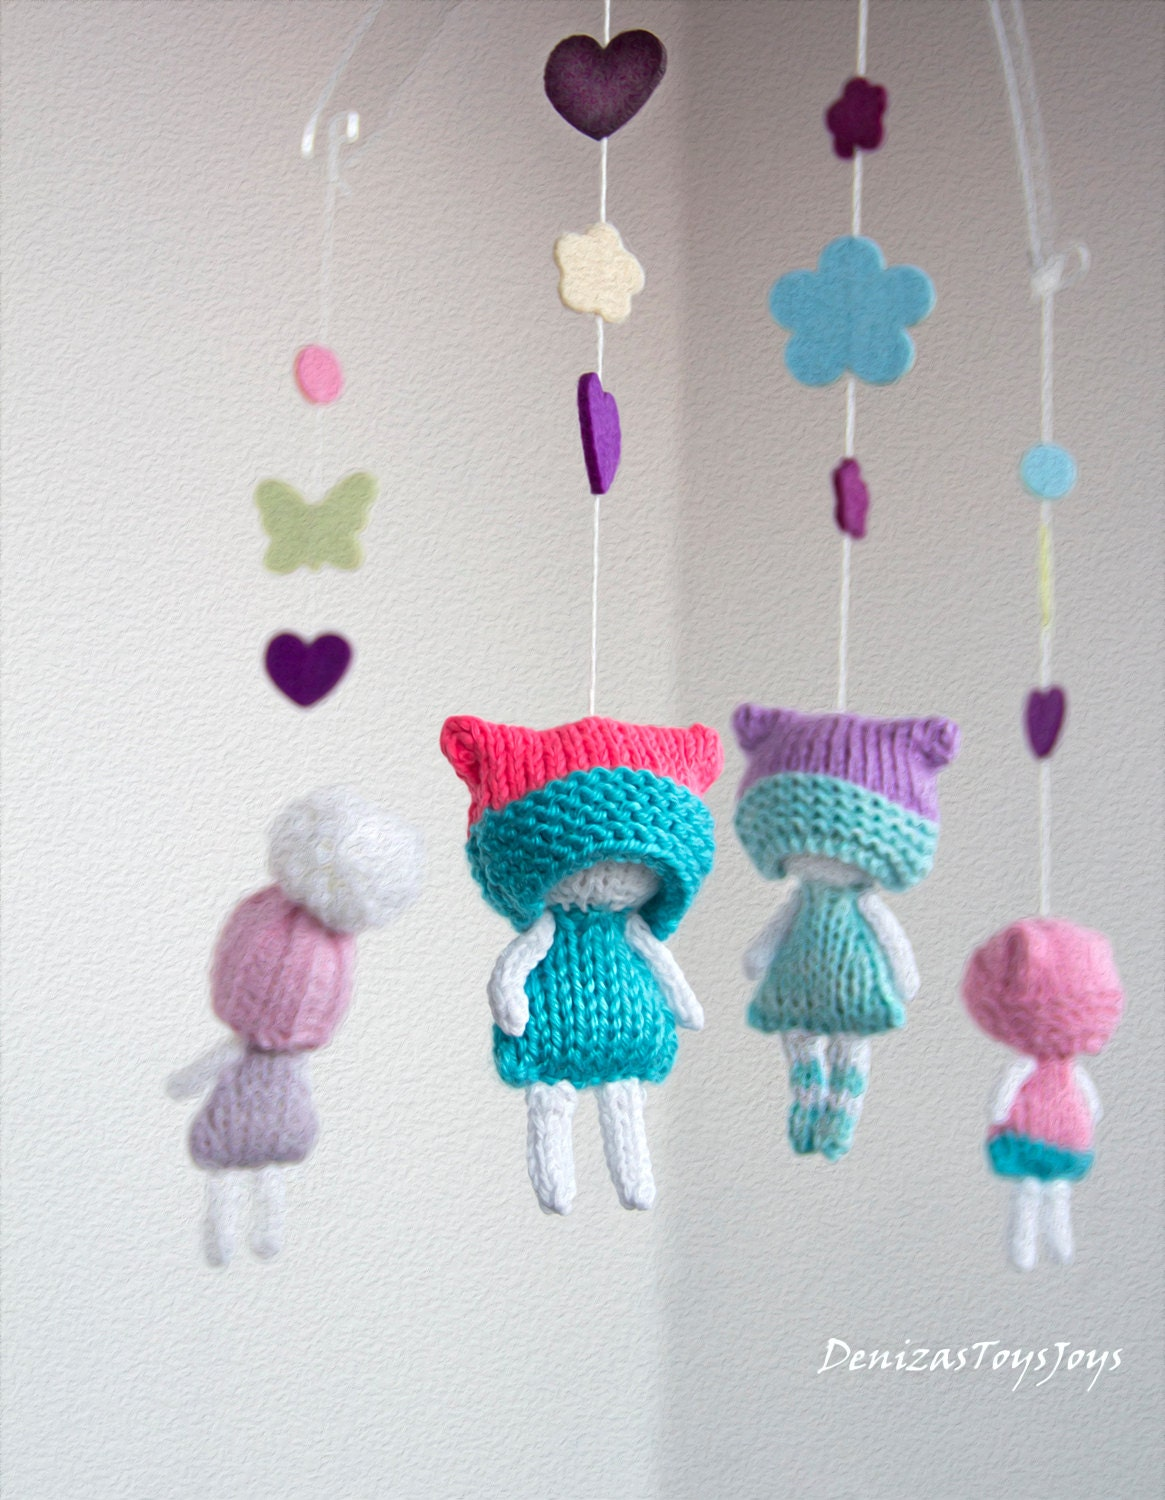 Double Knitting In The Round Patterns : Mini winter dolls pdf knitting pattern knitted in the